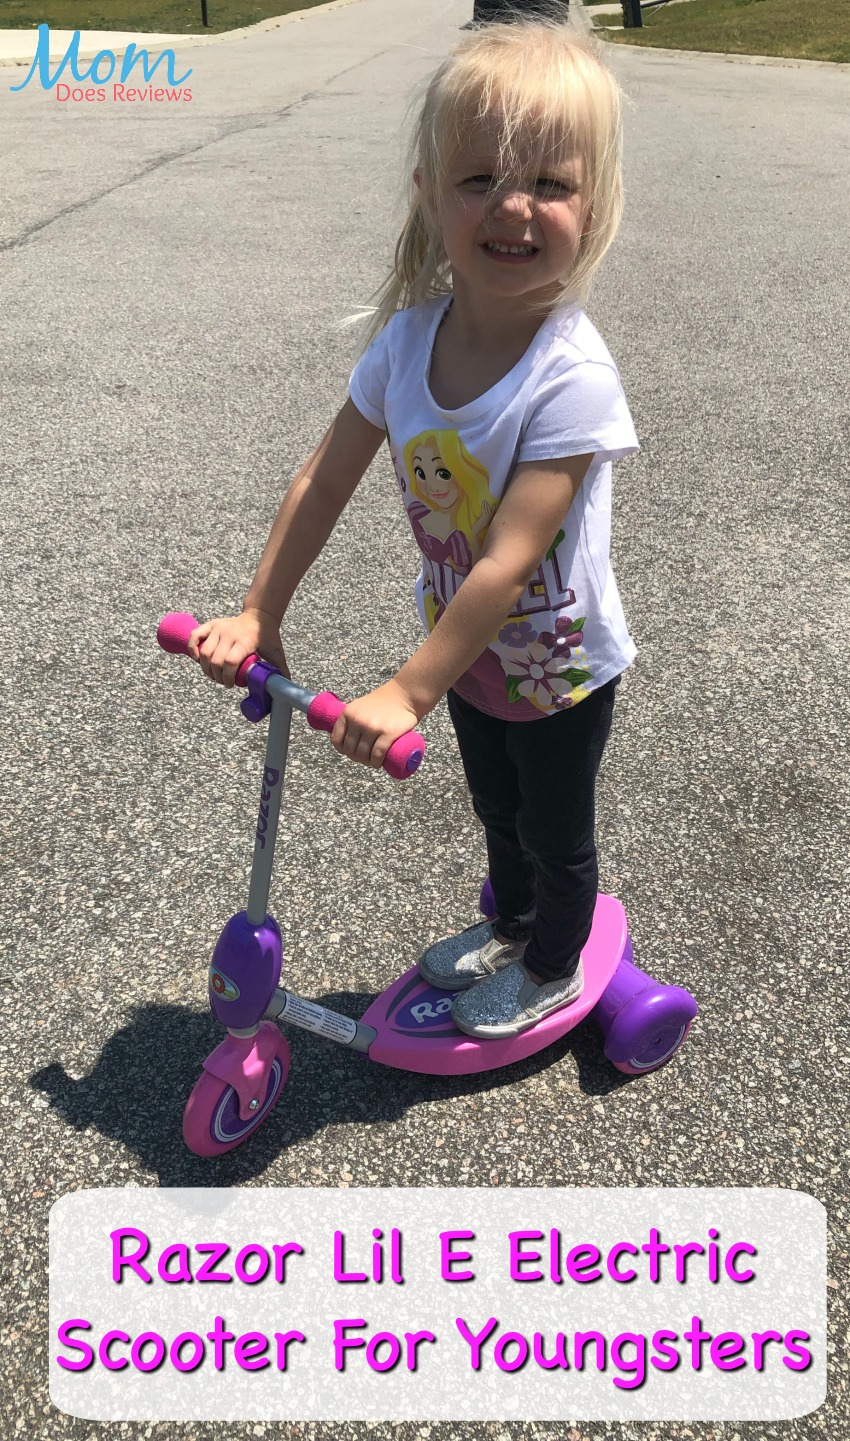 Razor Lil' E Electric Scooter Made Just For Youngsters